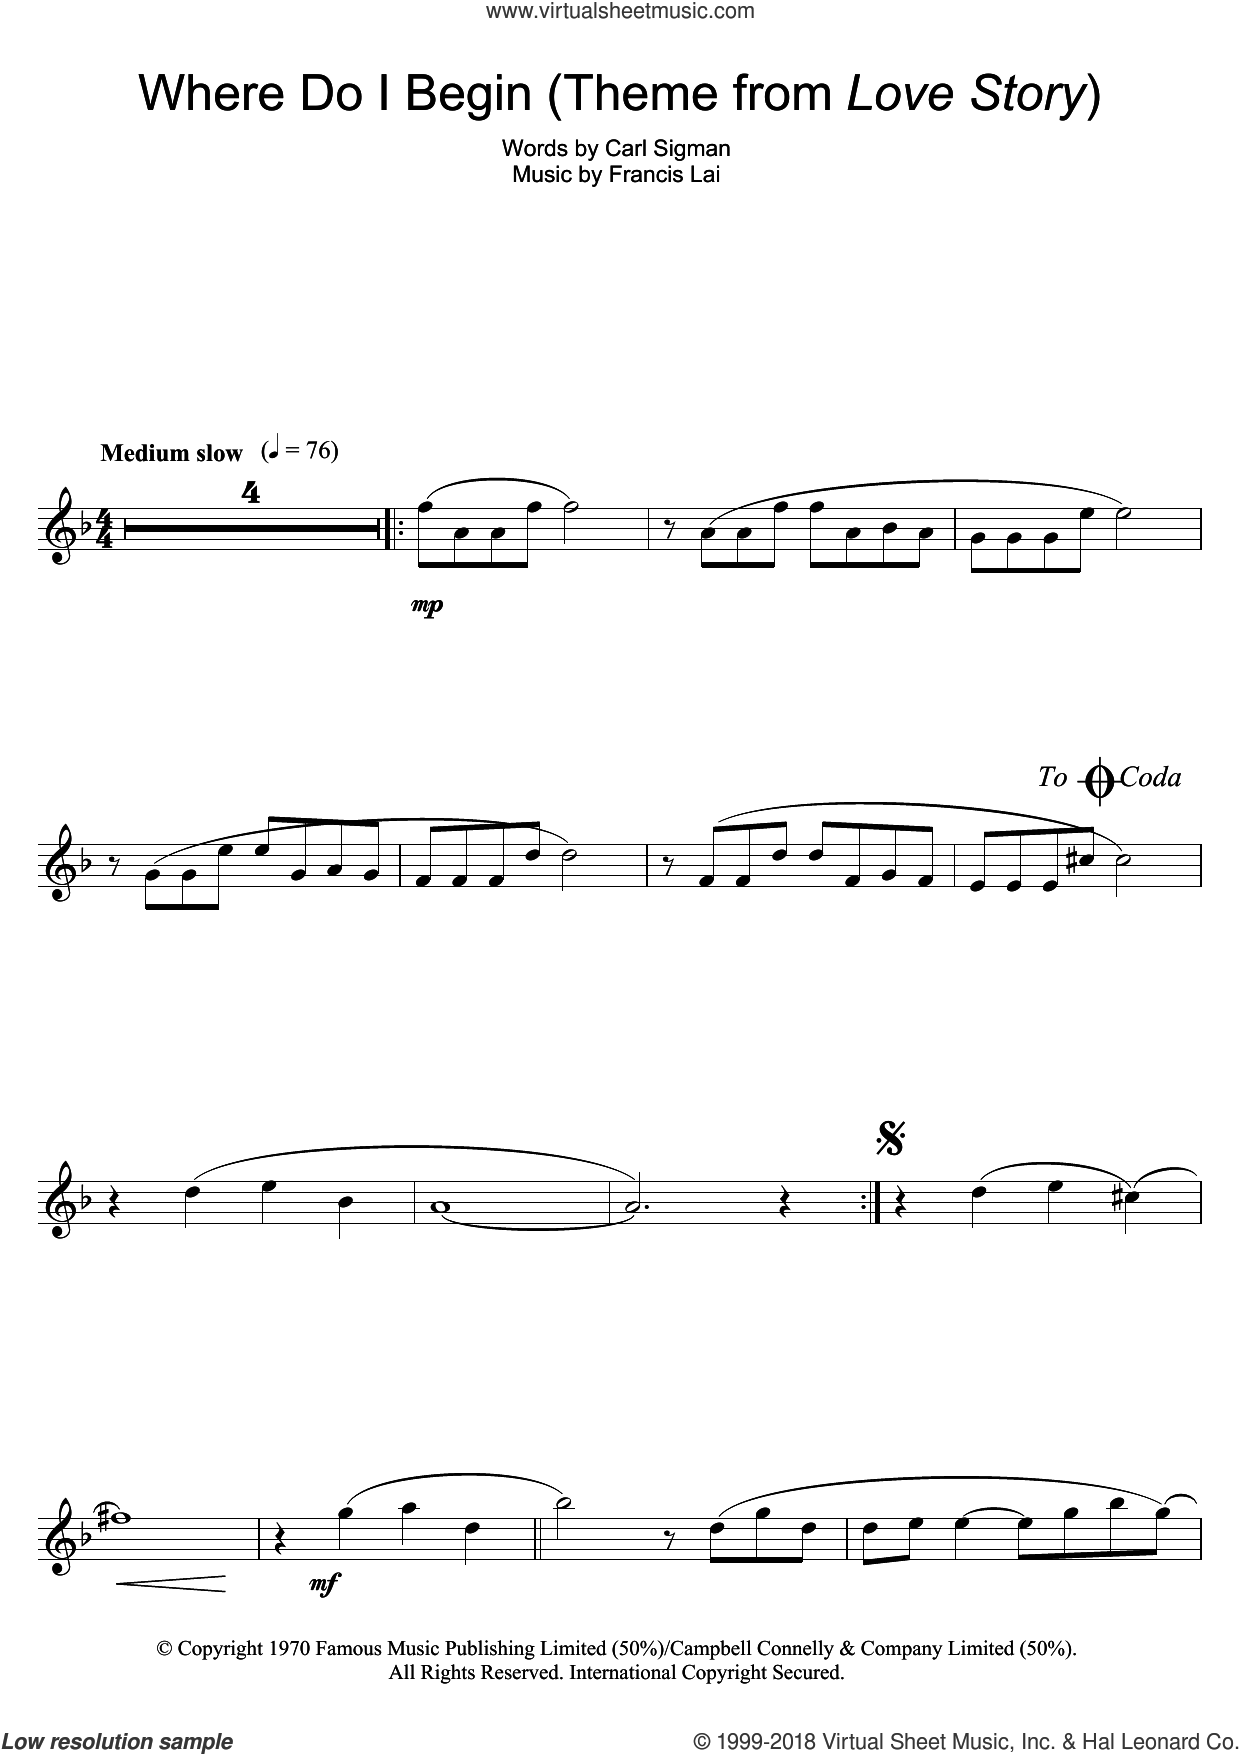 Where Do I Begin (theme from Love Story) sheet music for flute solo by Francis Lai and Carl Sigman, intermediate skill level